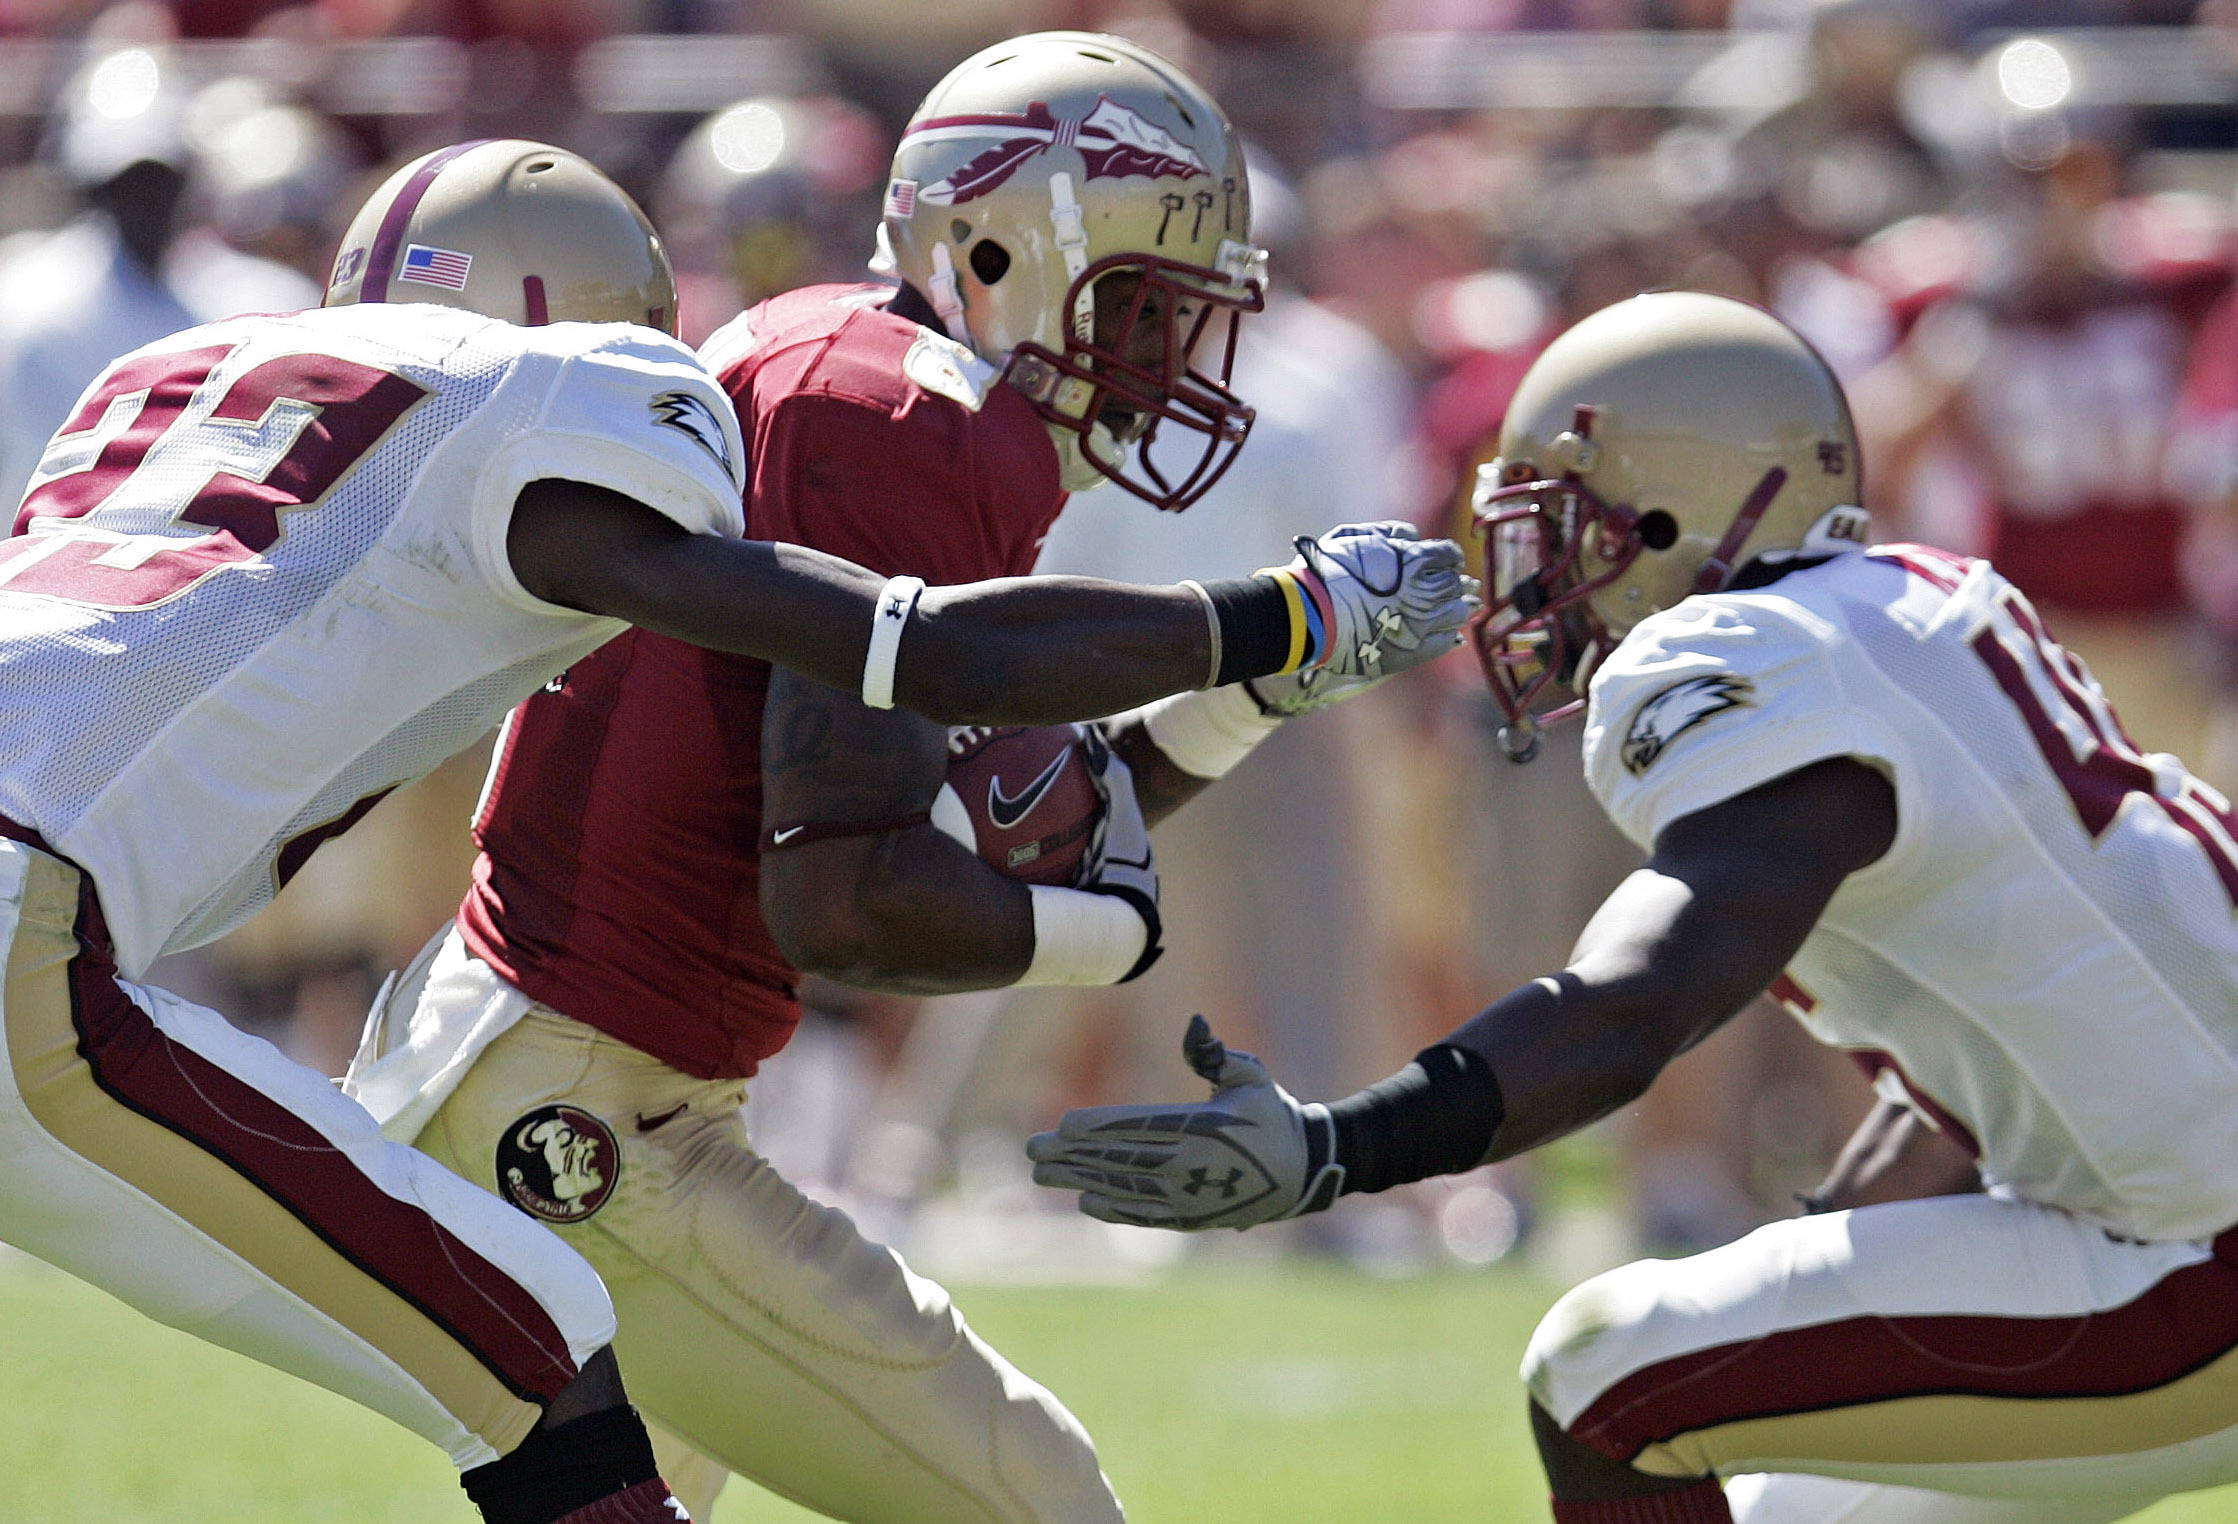 Florida State's Taiwan Easterling tries to break through the Boston College defense. (AP Photo/Steve Cannon)